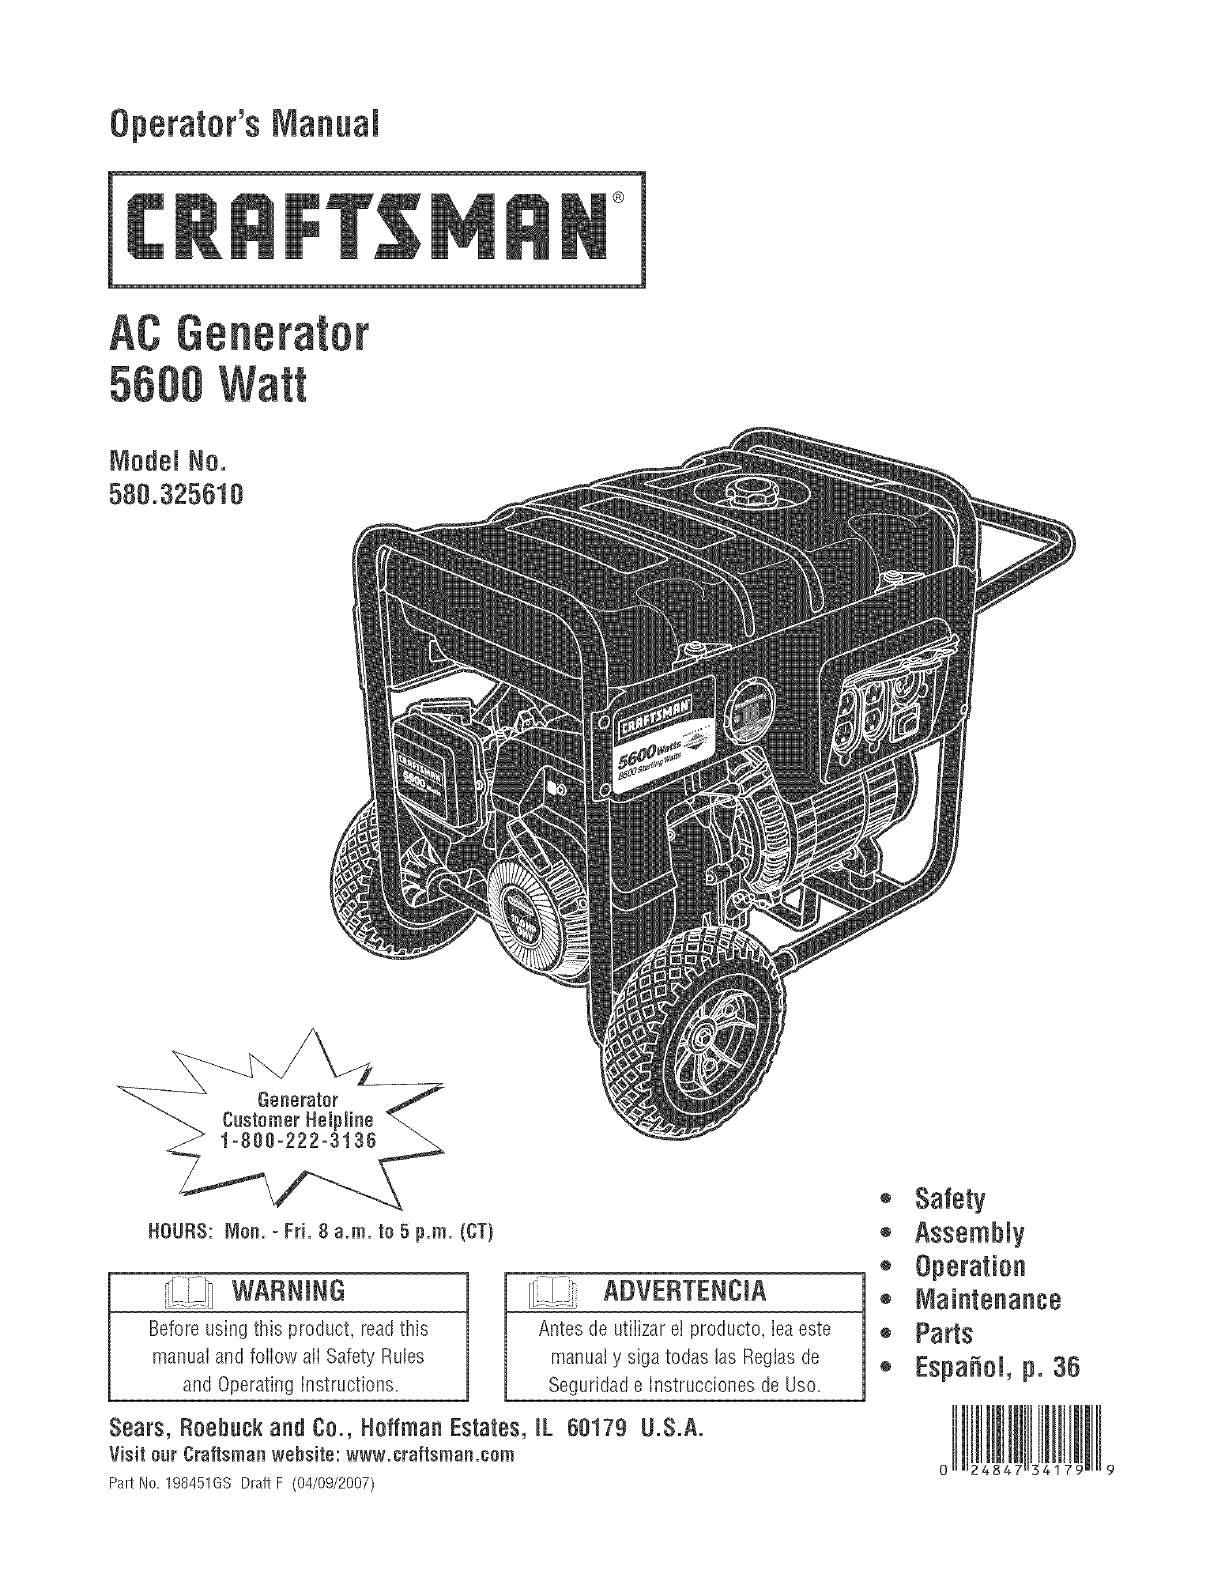 Craftsman Portable Generator 580.32561 User Guide